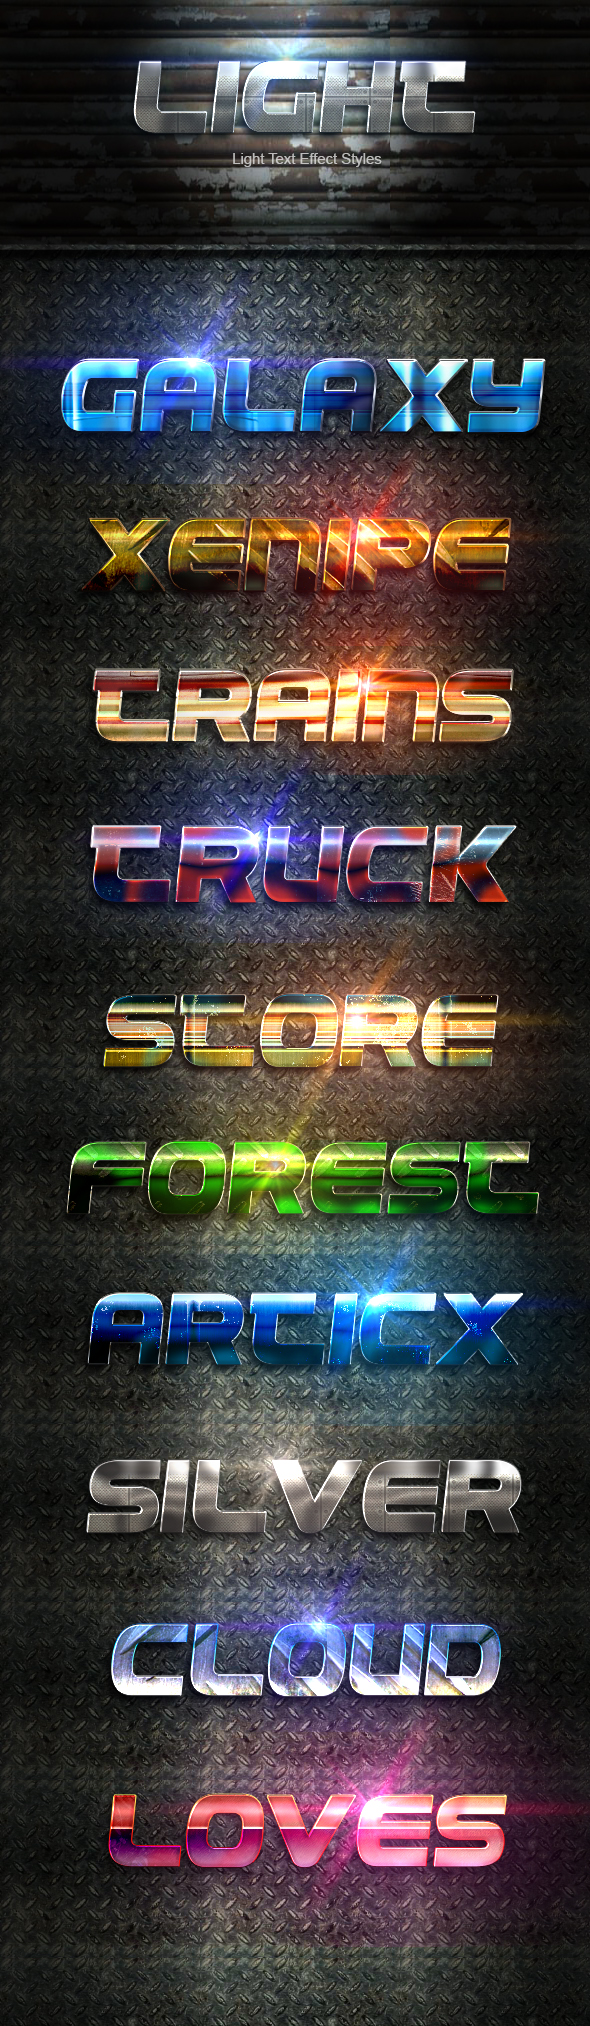 Light Text Effect Styles Vol 4 - Text Effects Styles